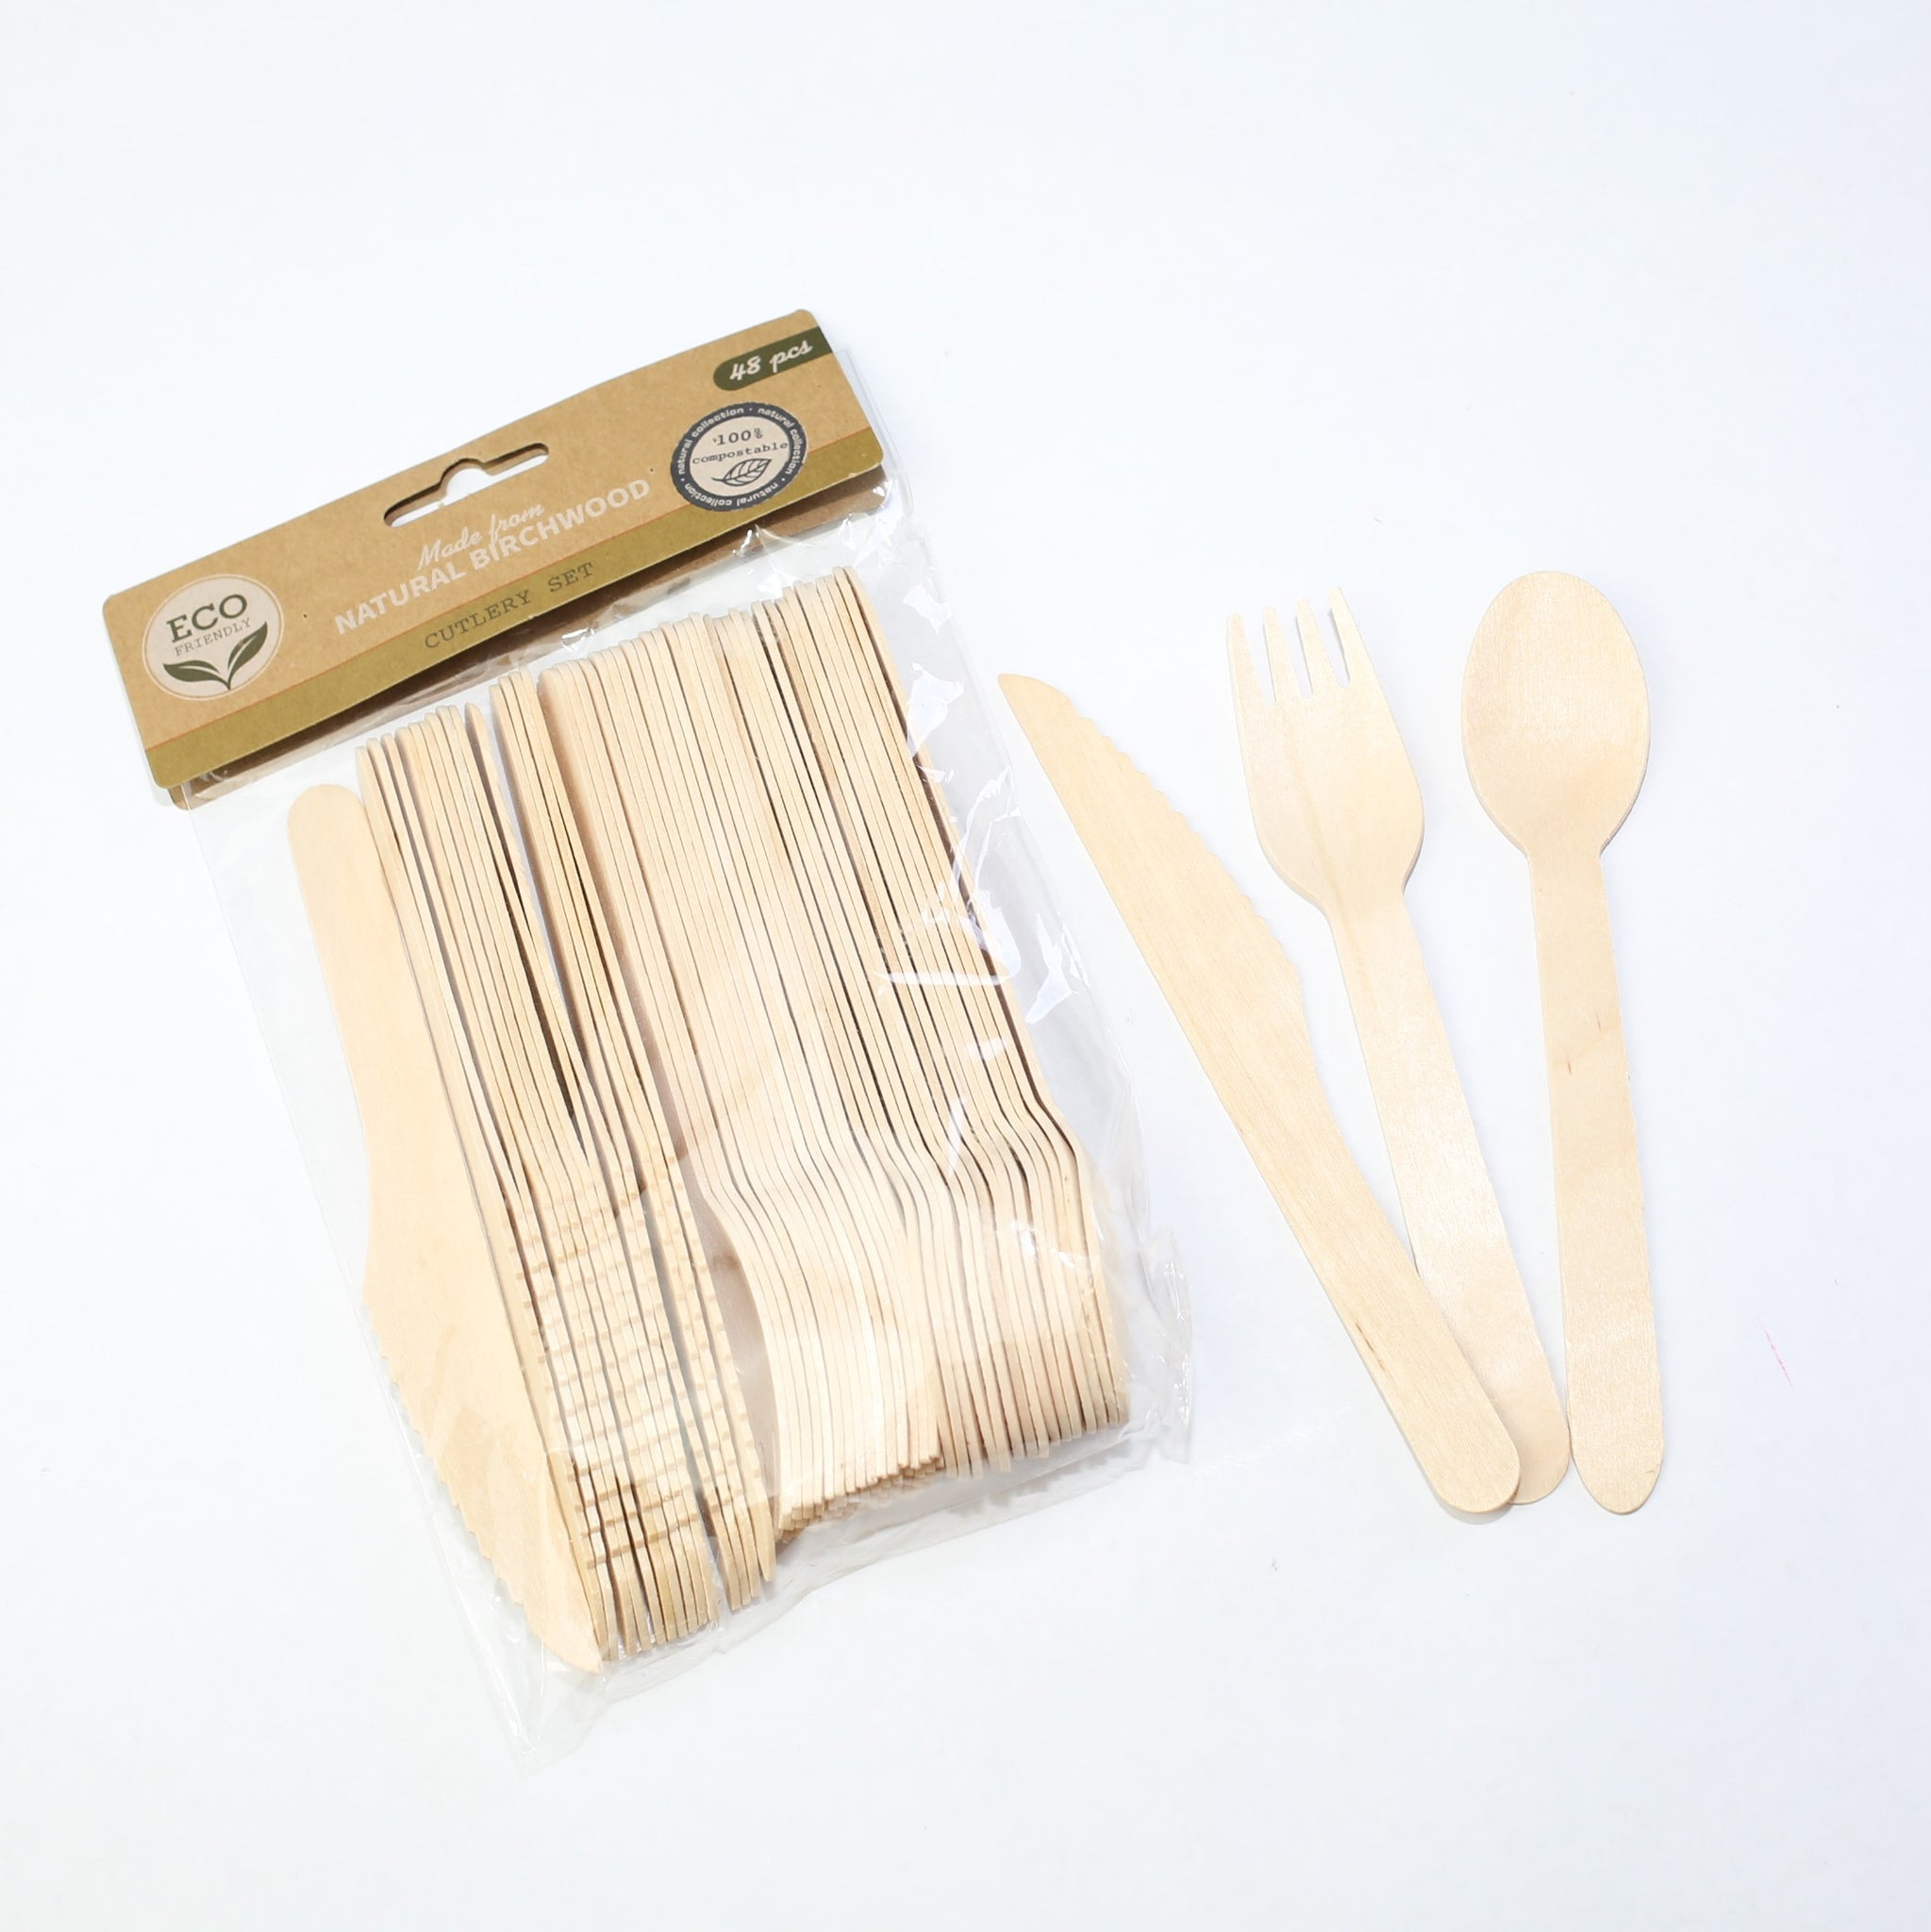 Birch Wood Cutlery Set - 48 pieces